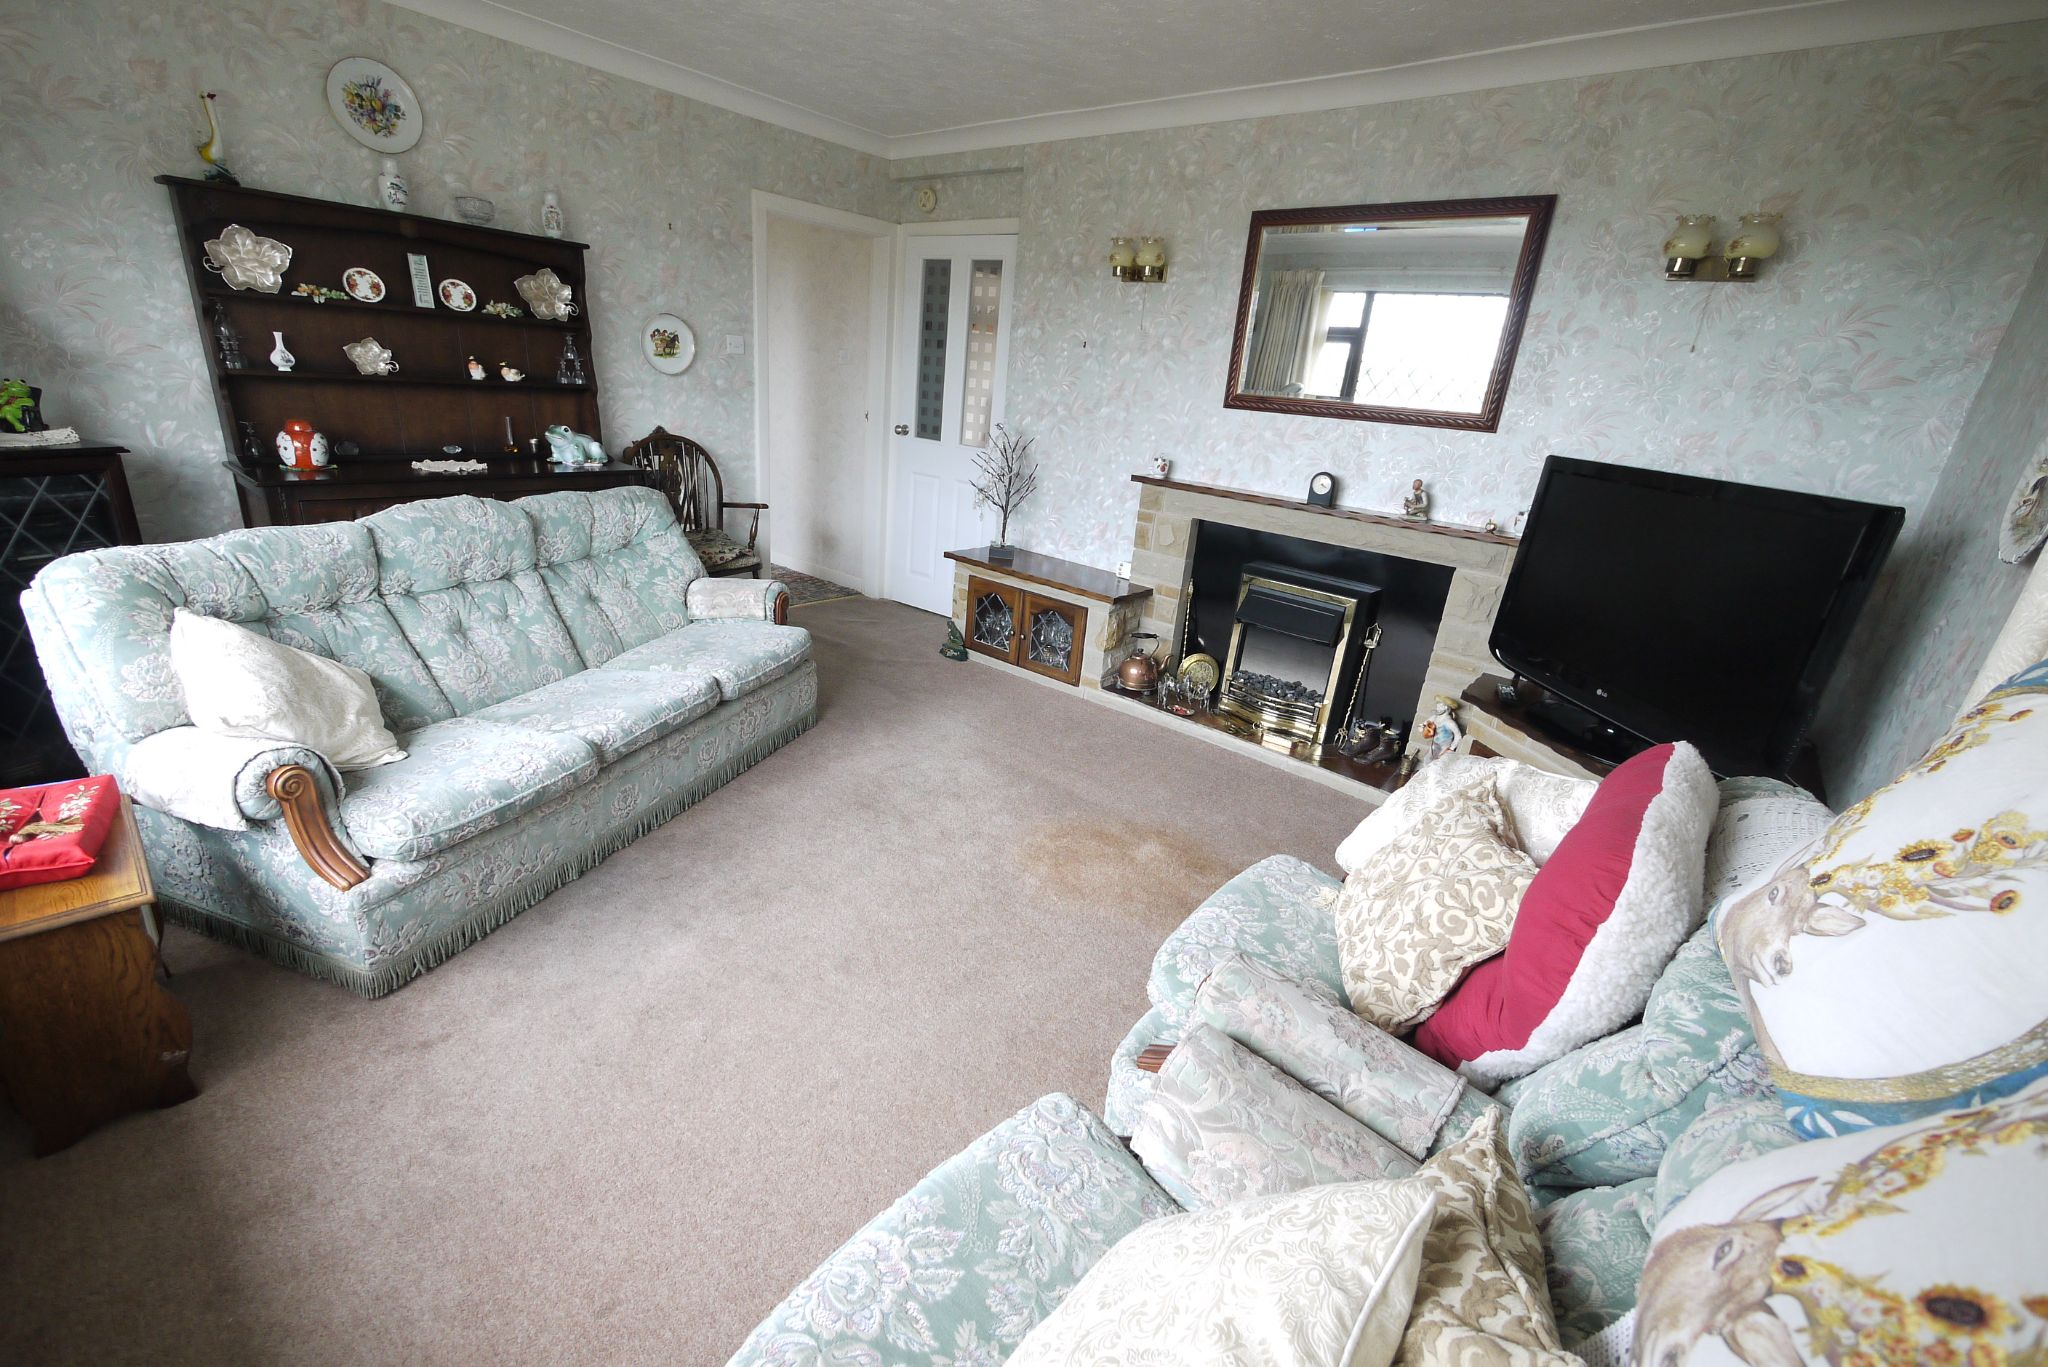 3 bedroom semi-detached bungalow SSTC in Brighouse - Photograph 2.